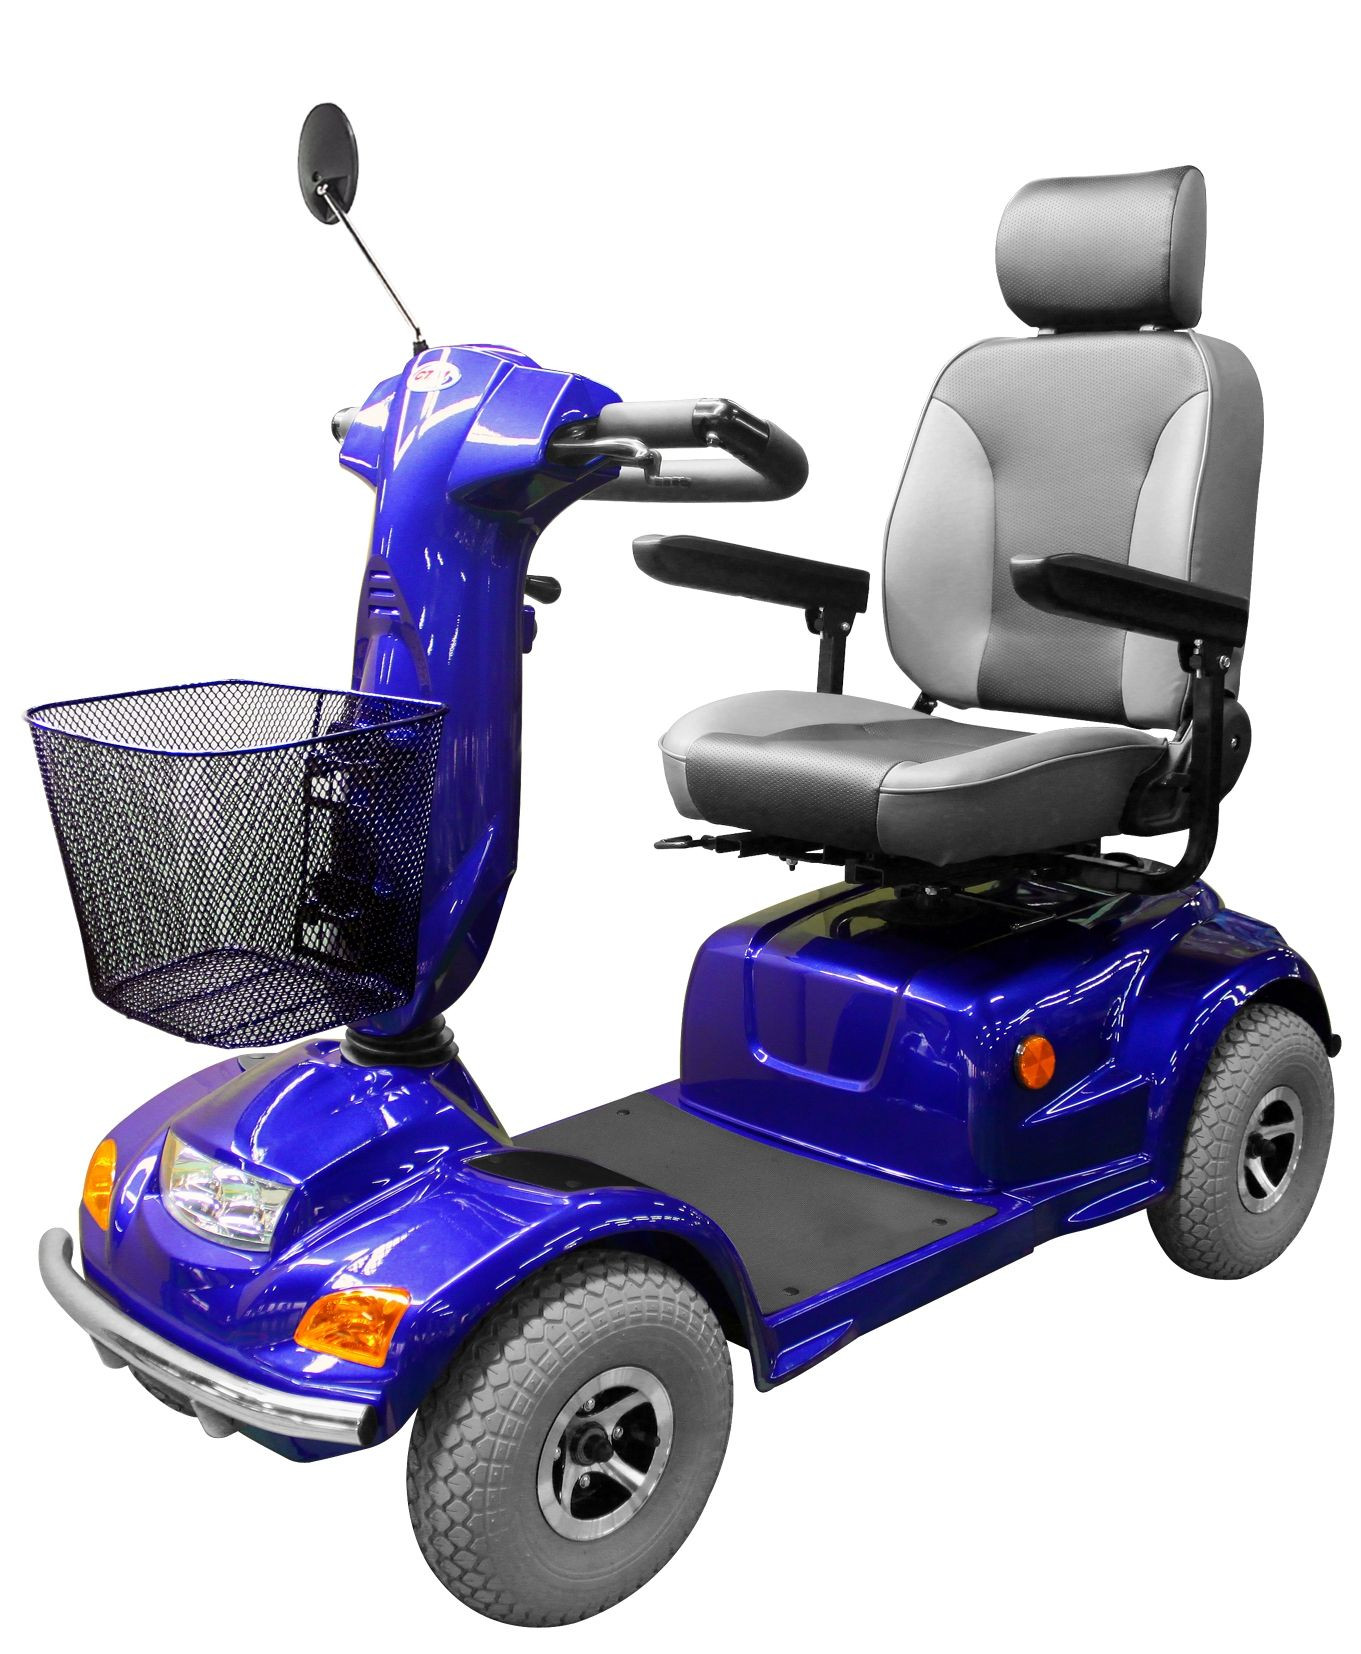 ctm hs 890 mobility scooter for sale lowest prices tax